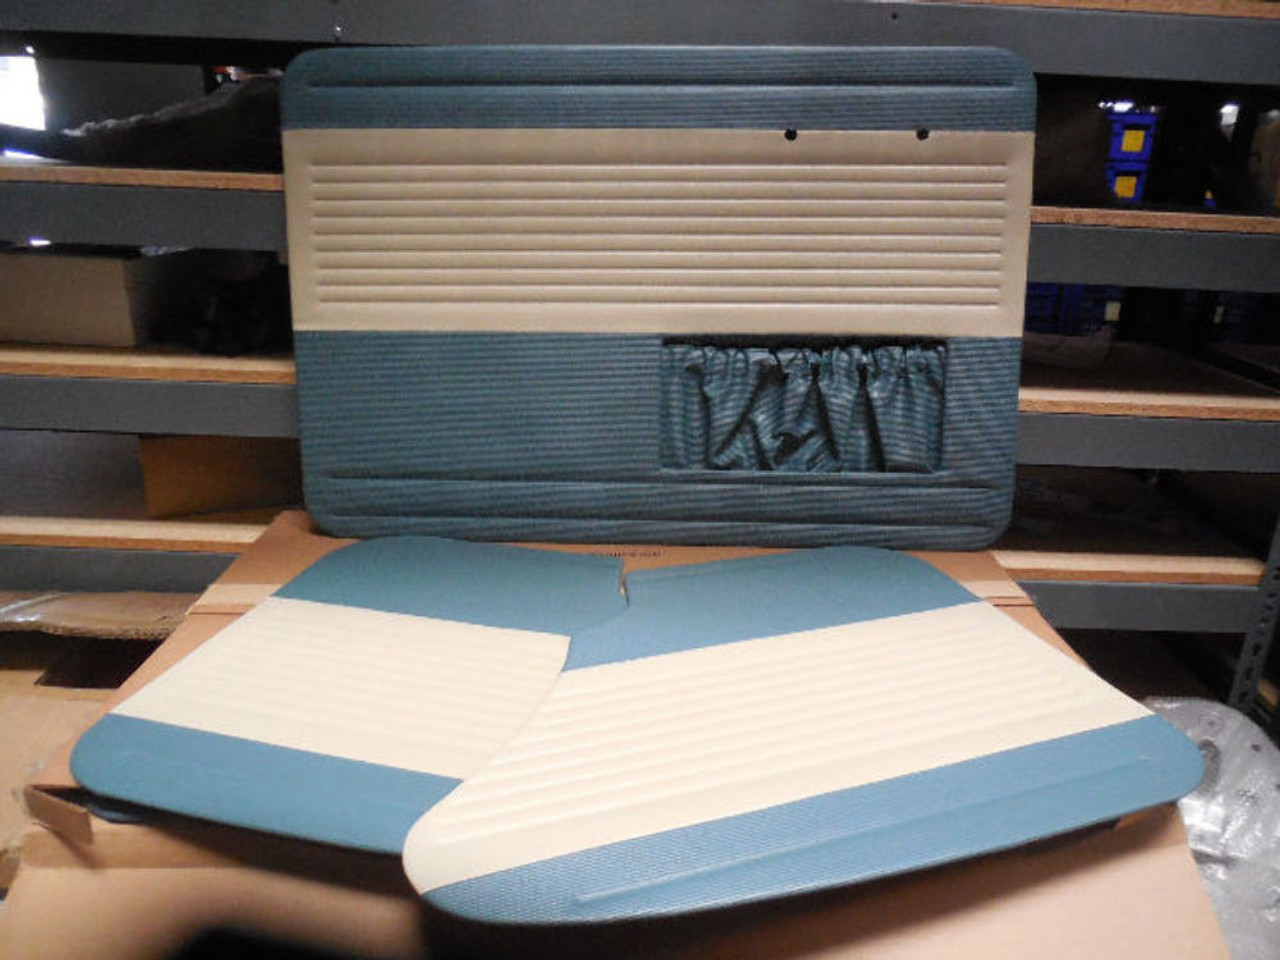 Door Panel Set, TMI OEM Classic Style, Water Blue/Off-White, Fits VW Bug 56-64